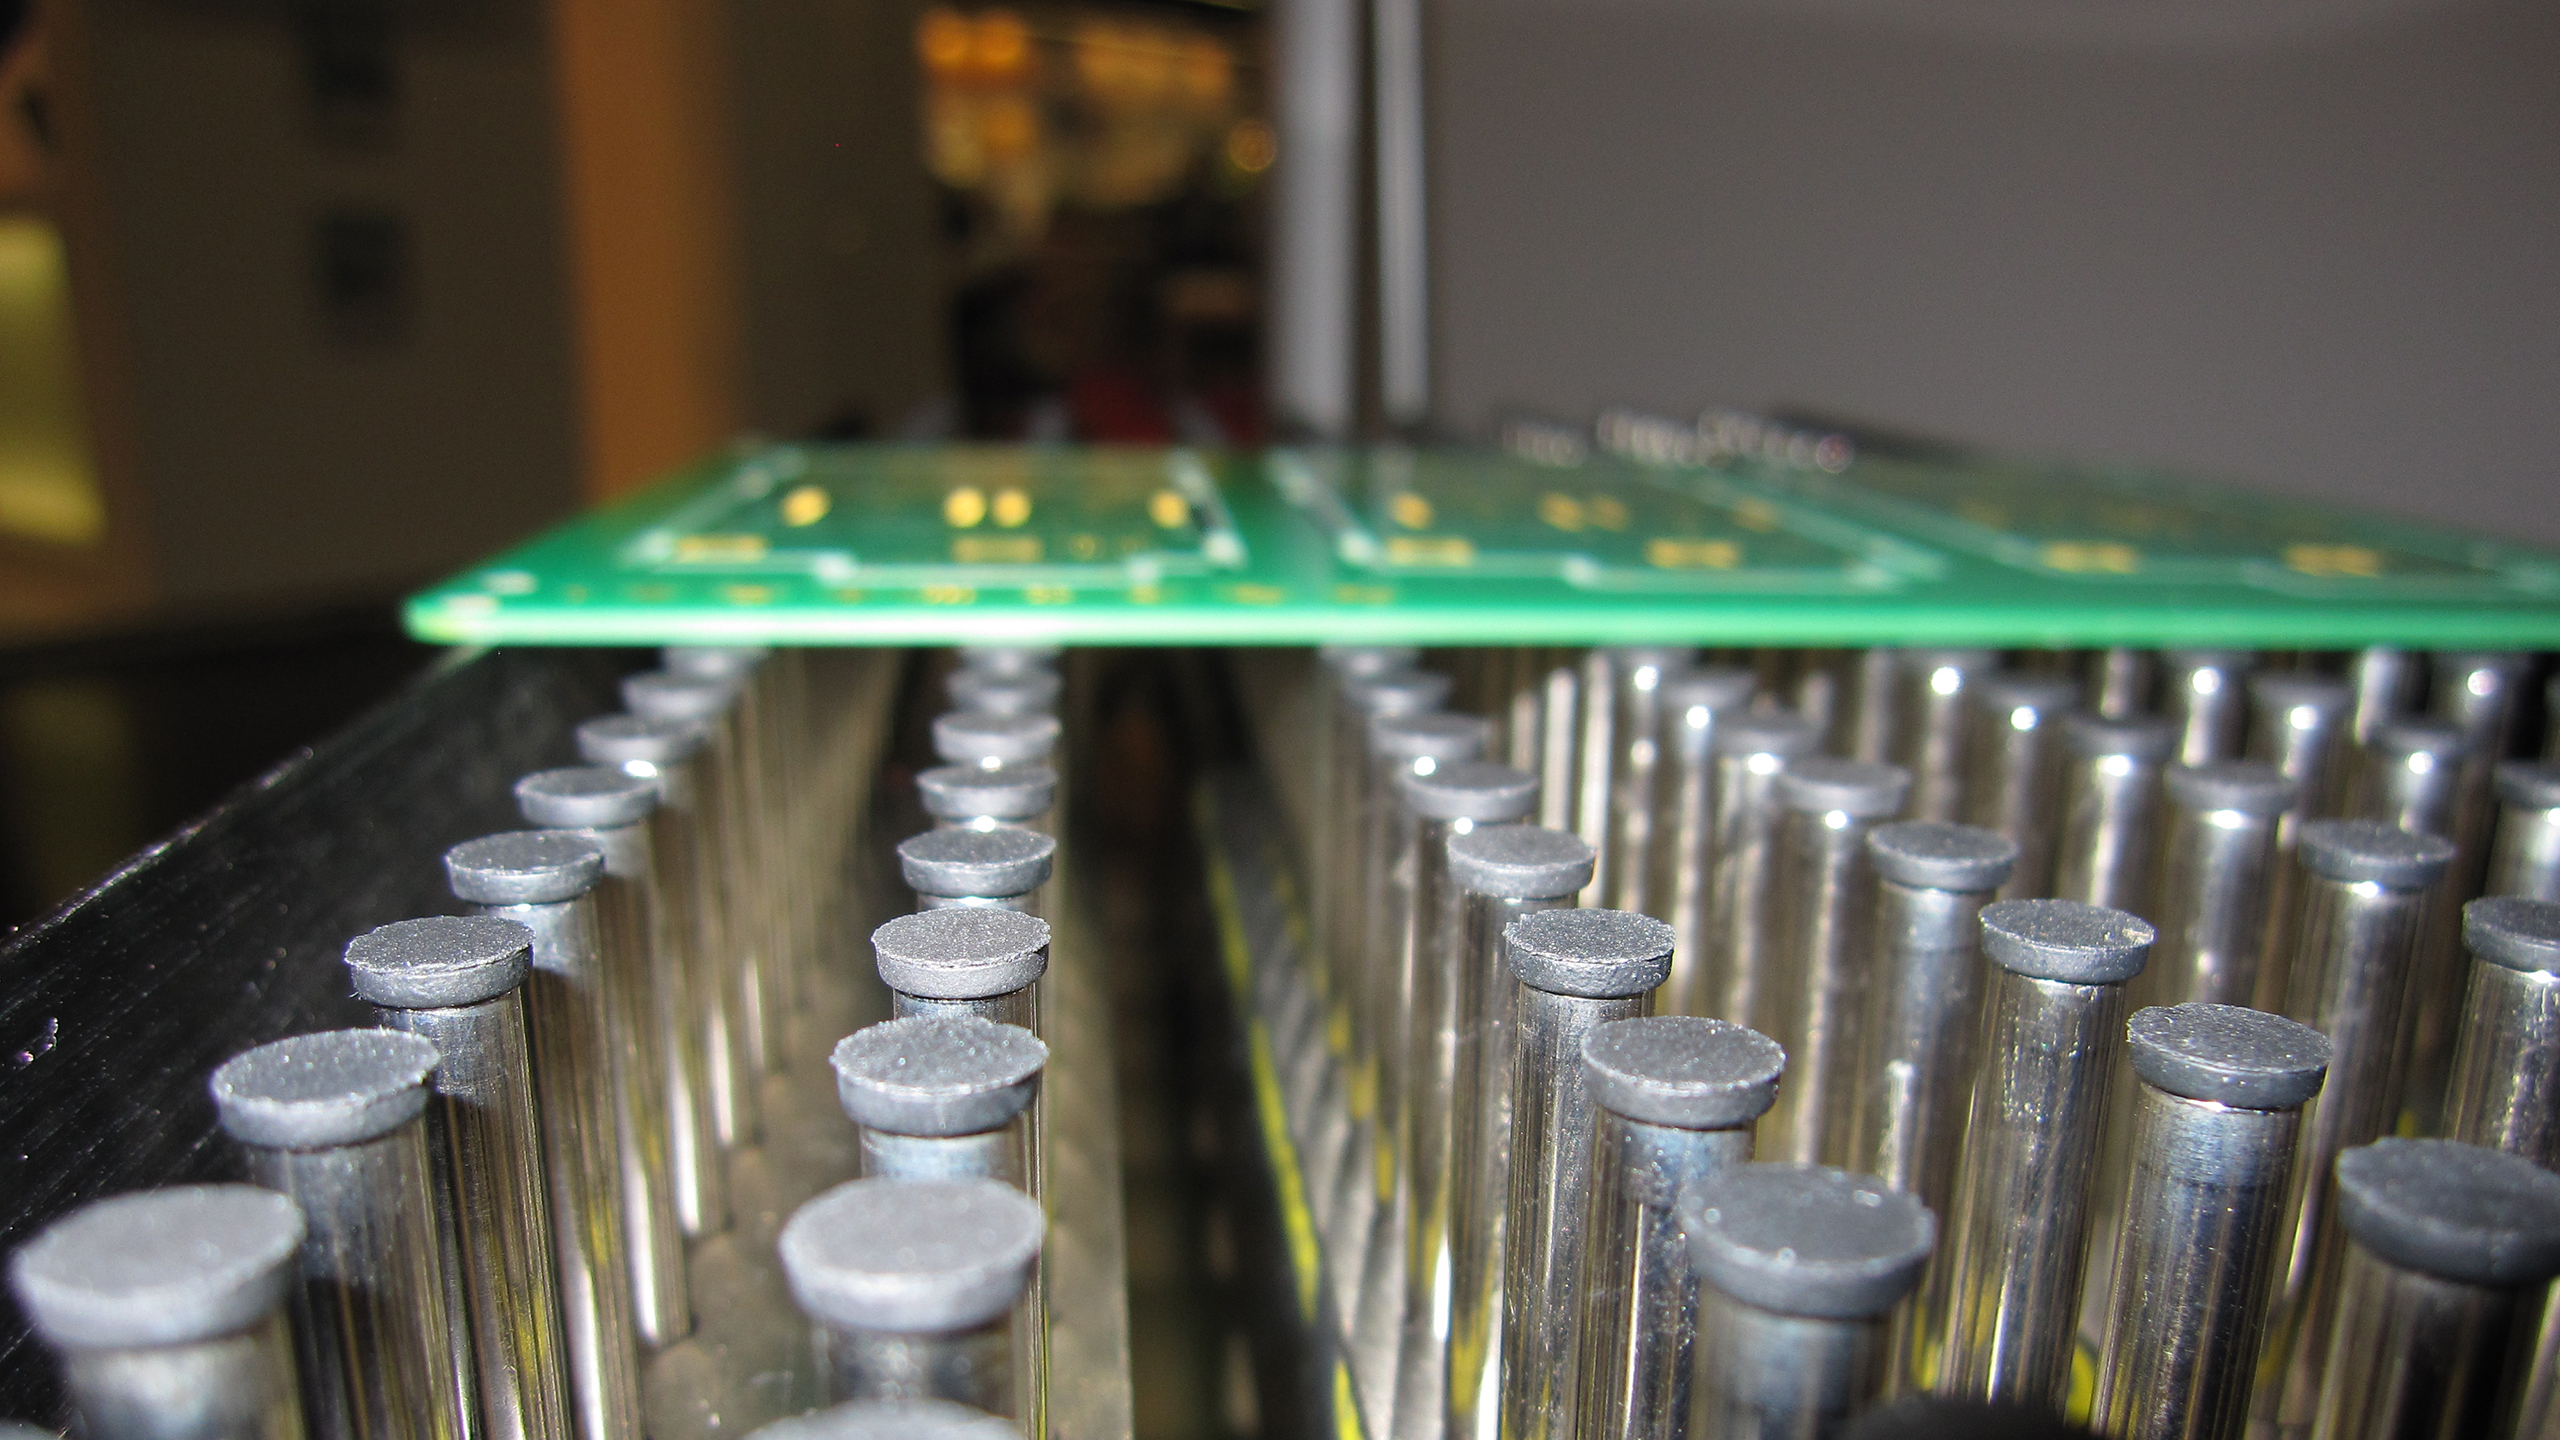 Support systems: Support circuit boards efficiently and safely